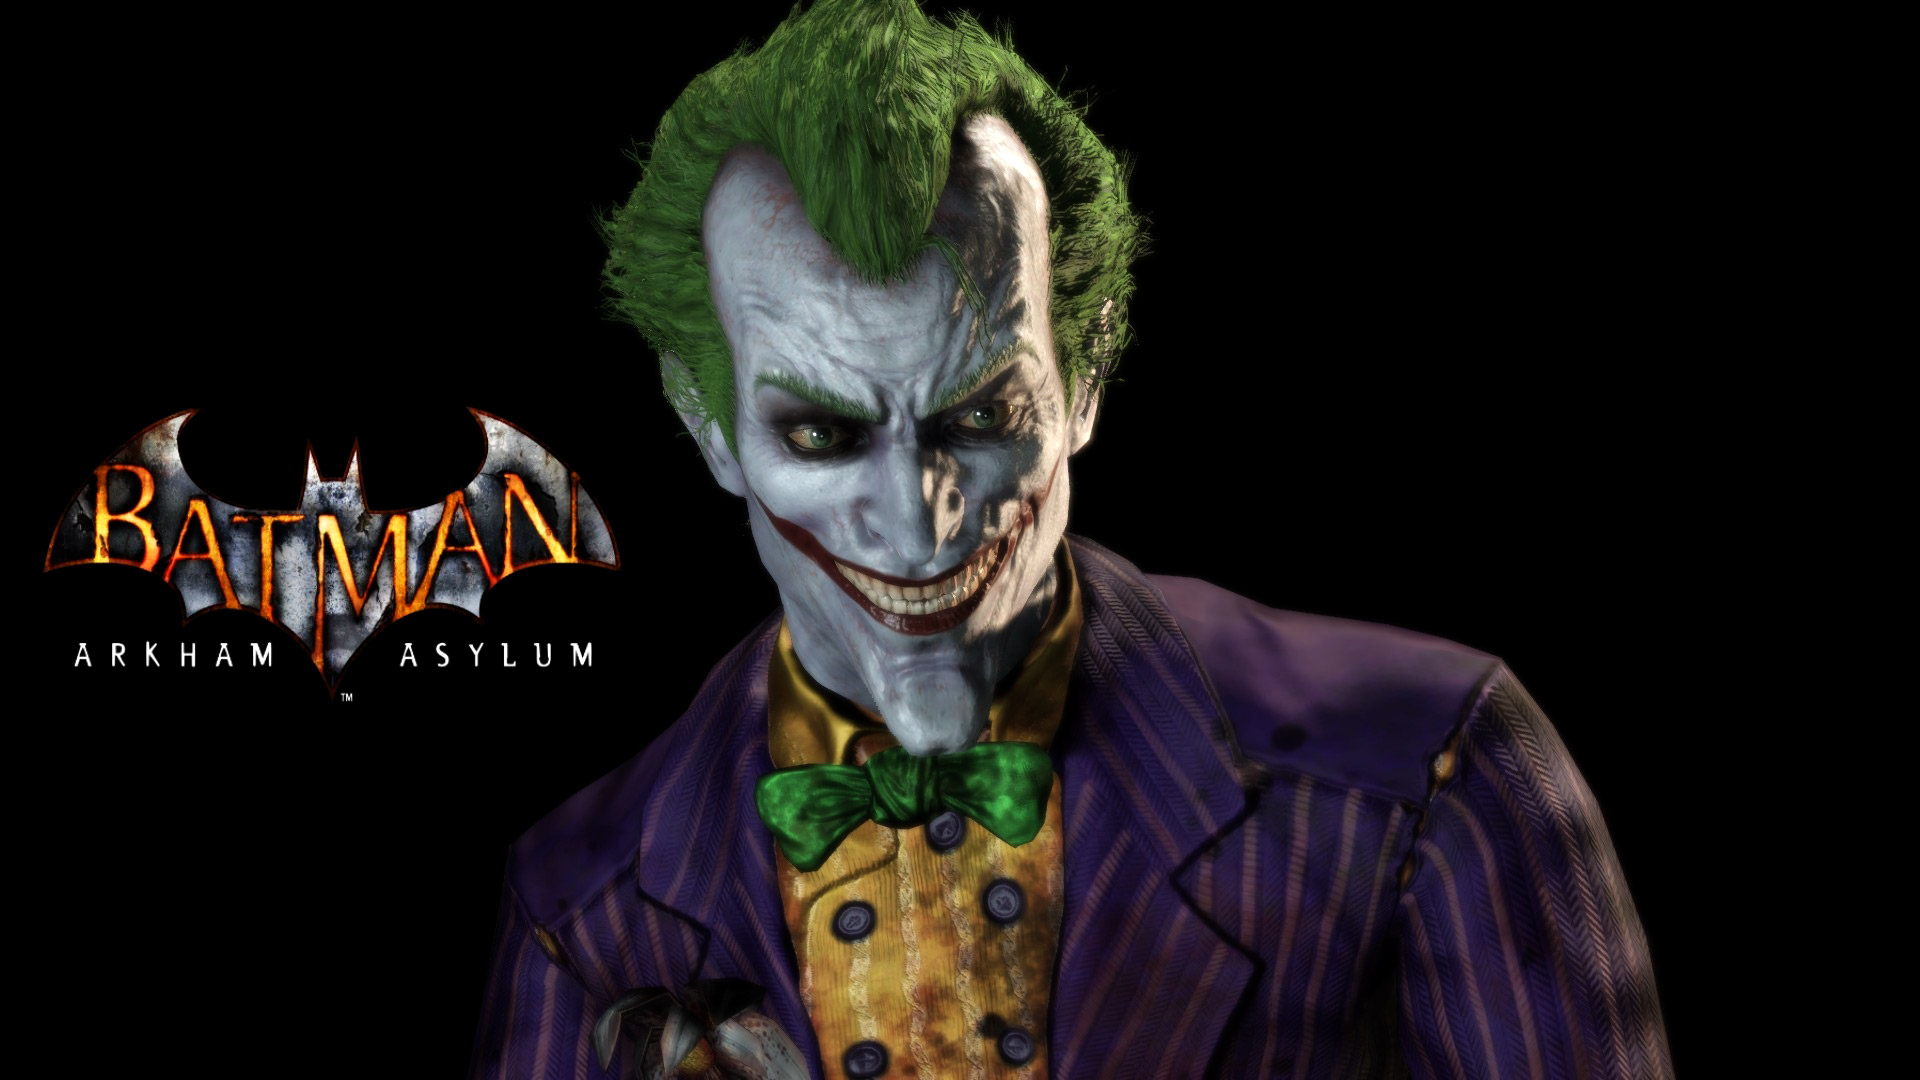 Free Batman: Arkham Asylum Wallpaper in 1920x1080